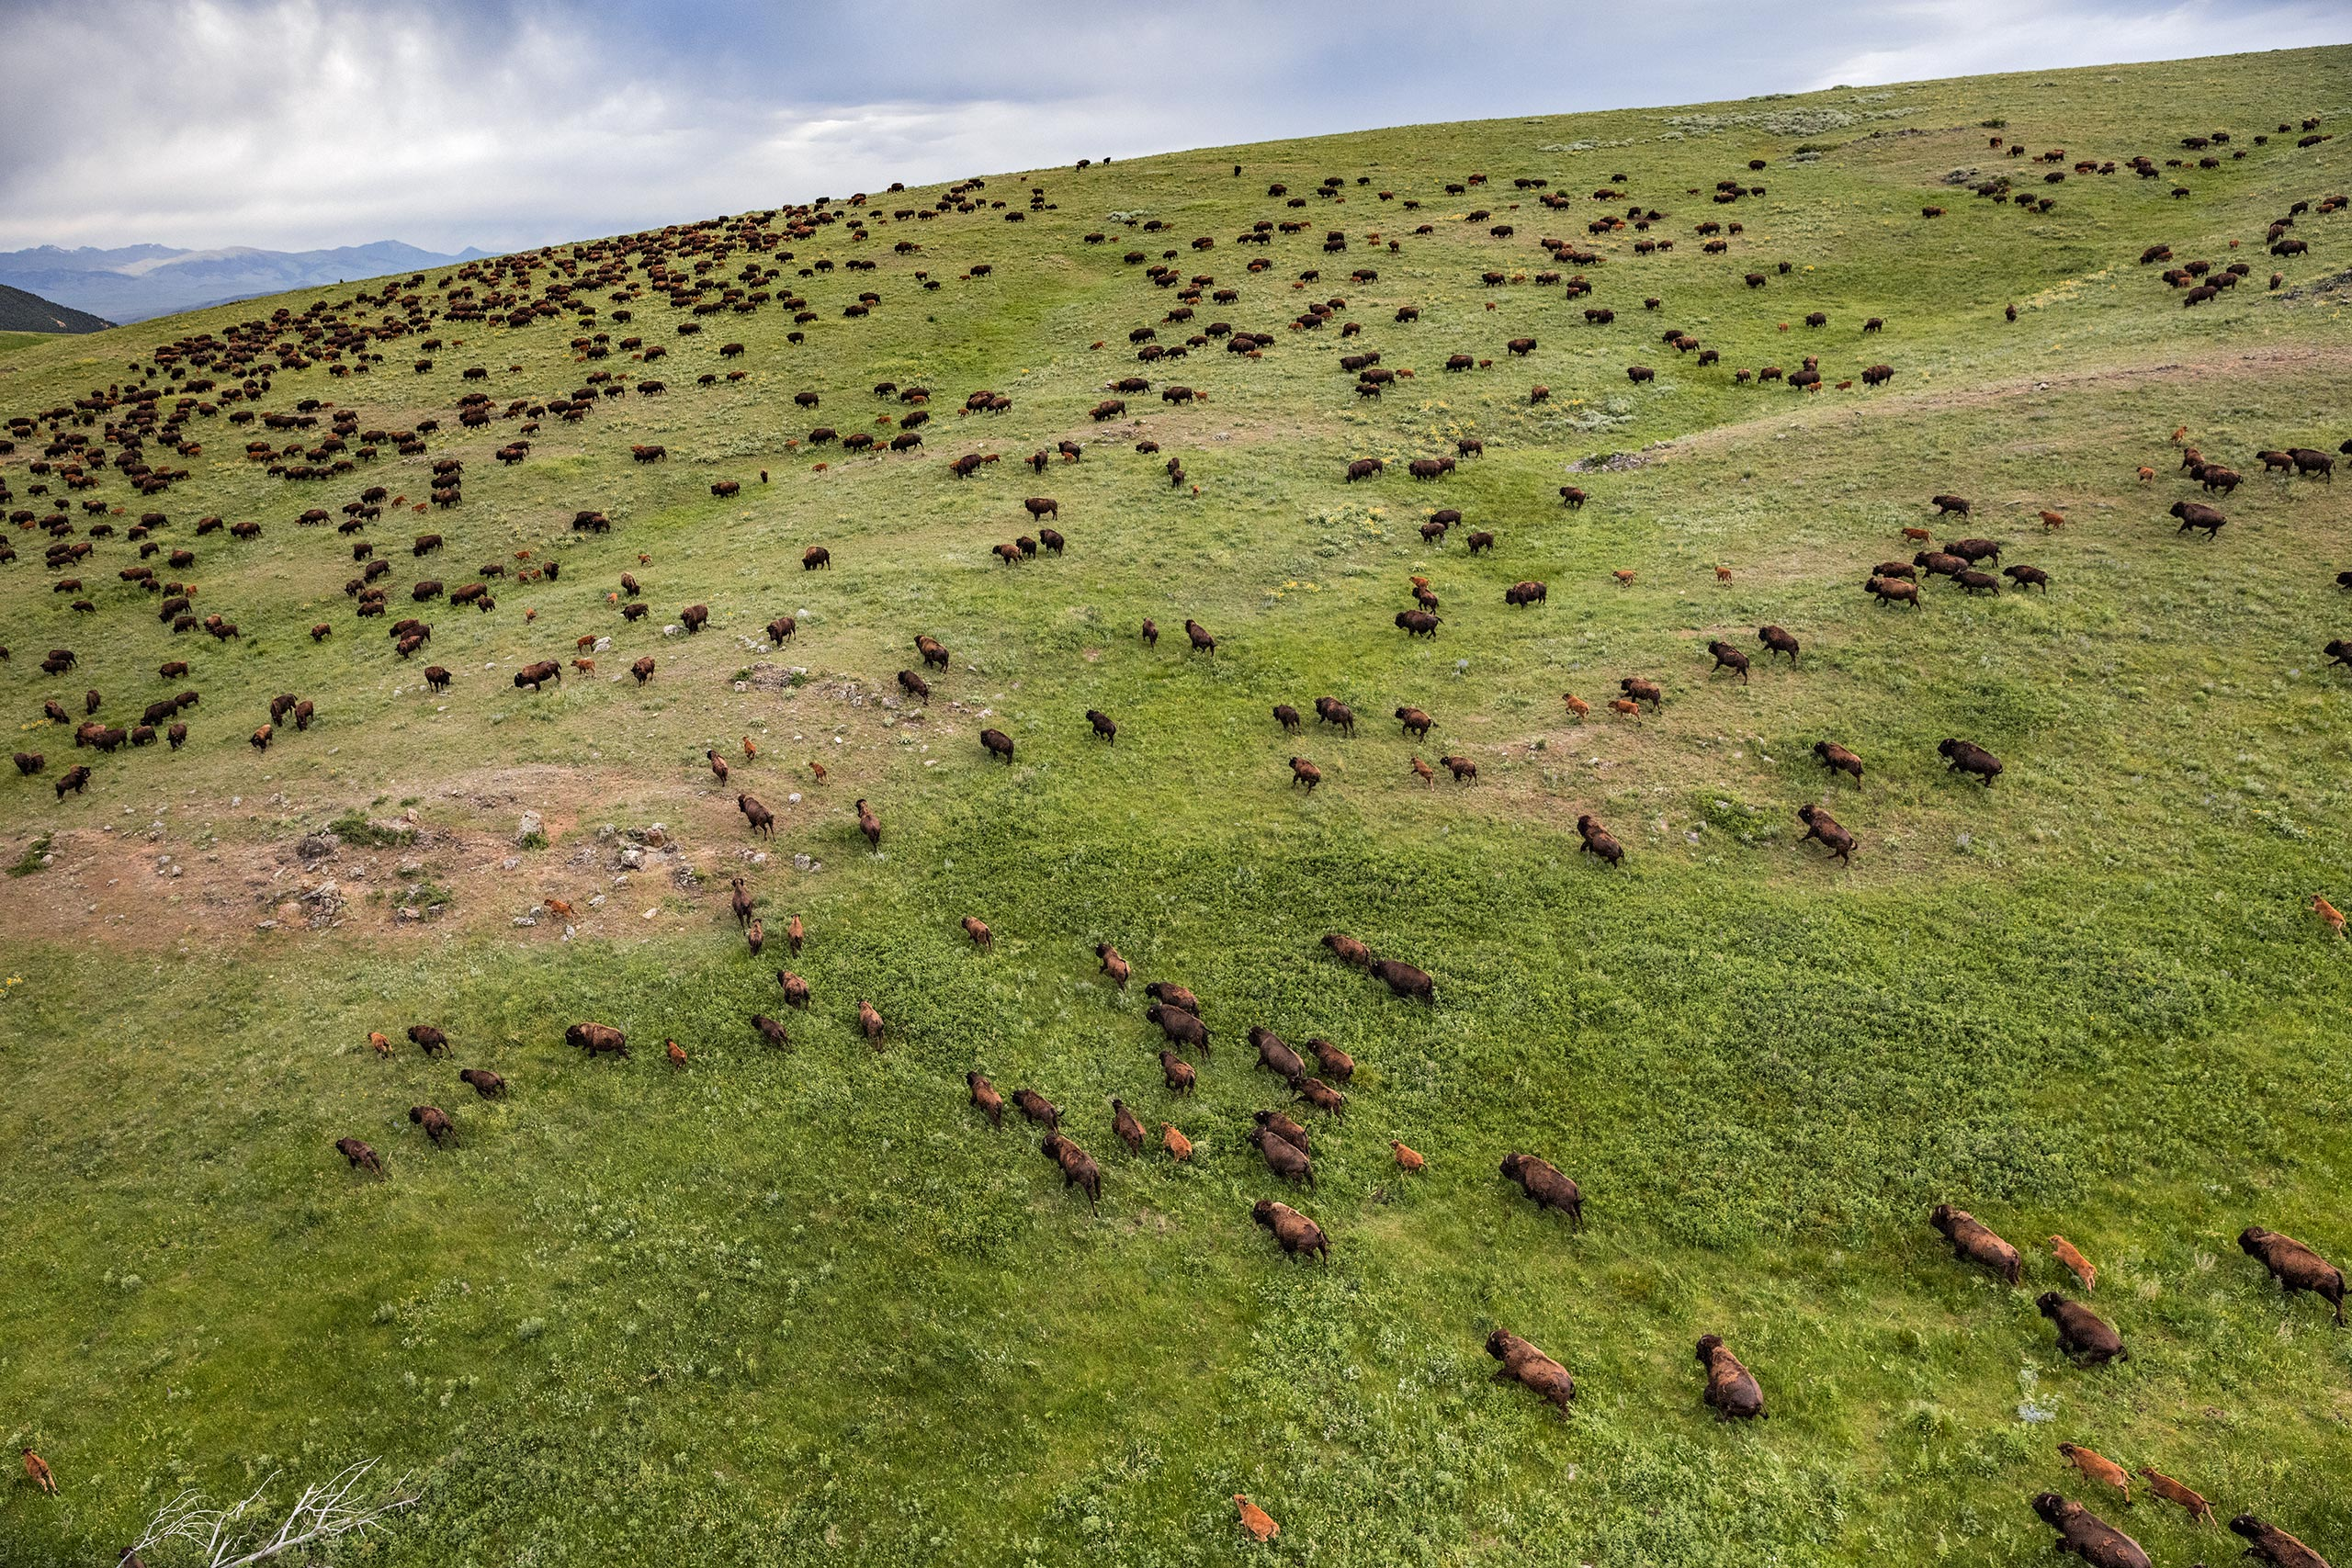 Bison are photographed on Ted Turner's Flying D Ranch outside Bozeman, MT on Tuesday, June 14, 2016.From  A Visual Ode to the American Dream